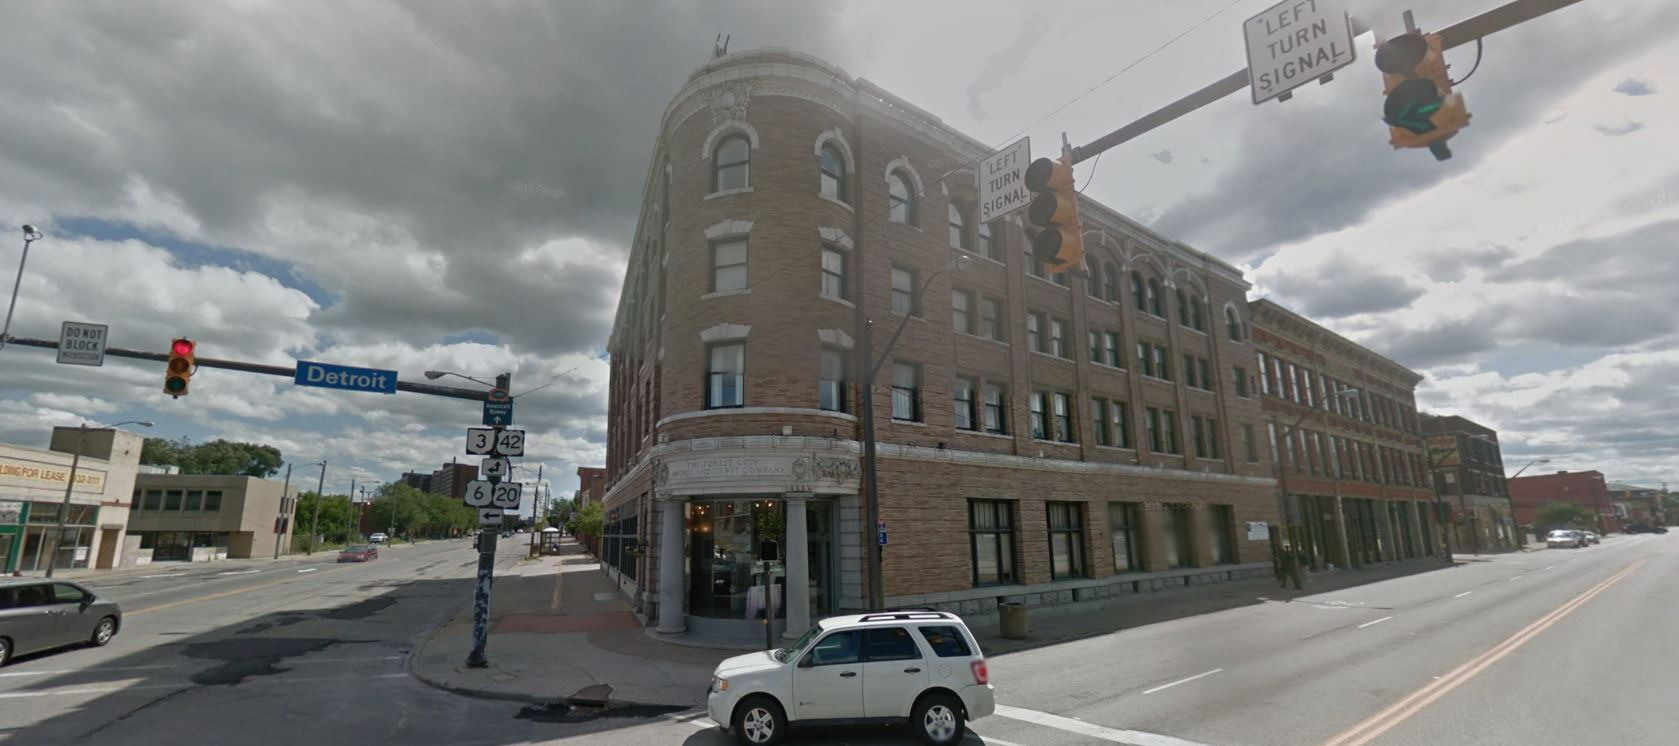 The Forest City Savings and Trust building in Cleveland (image via Google Street View)